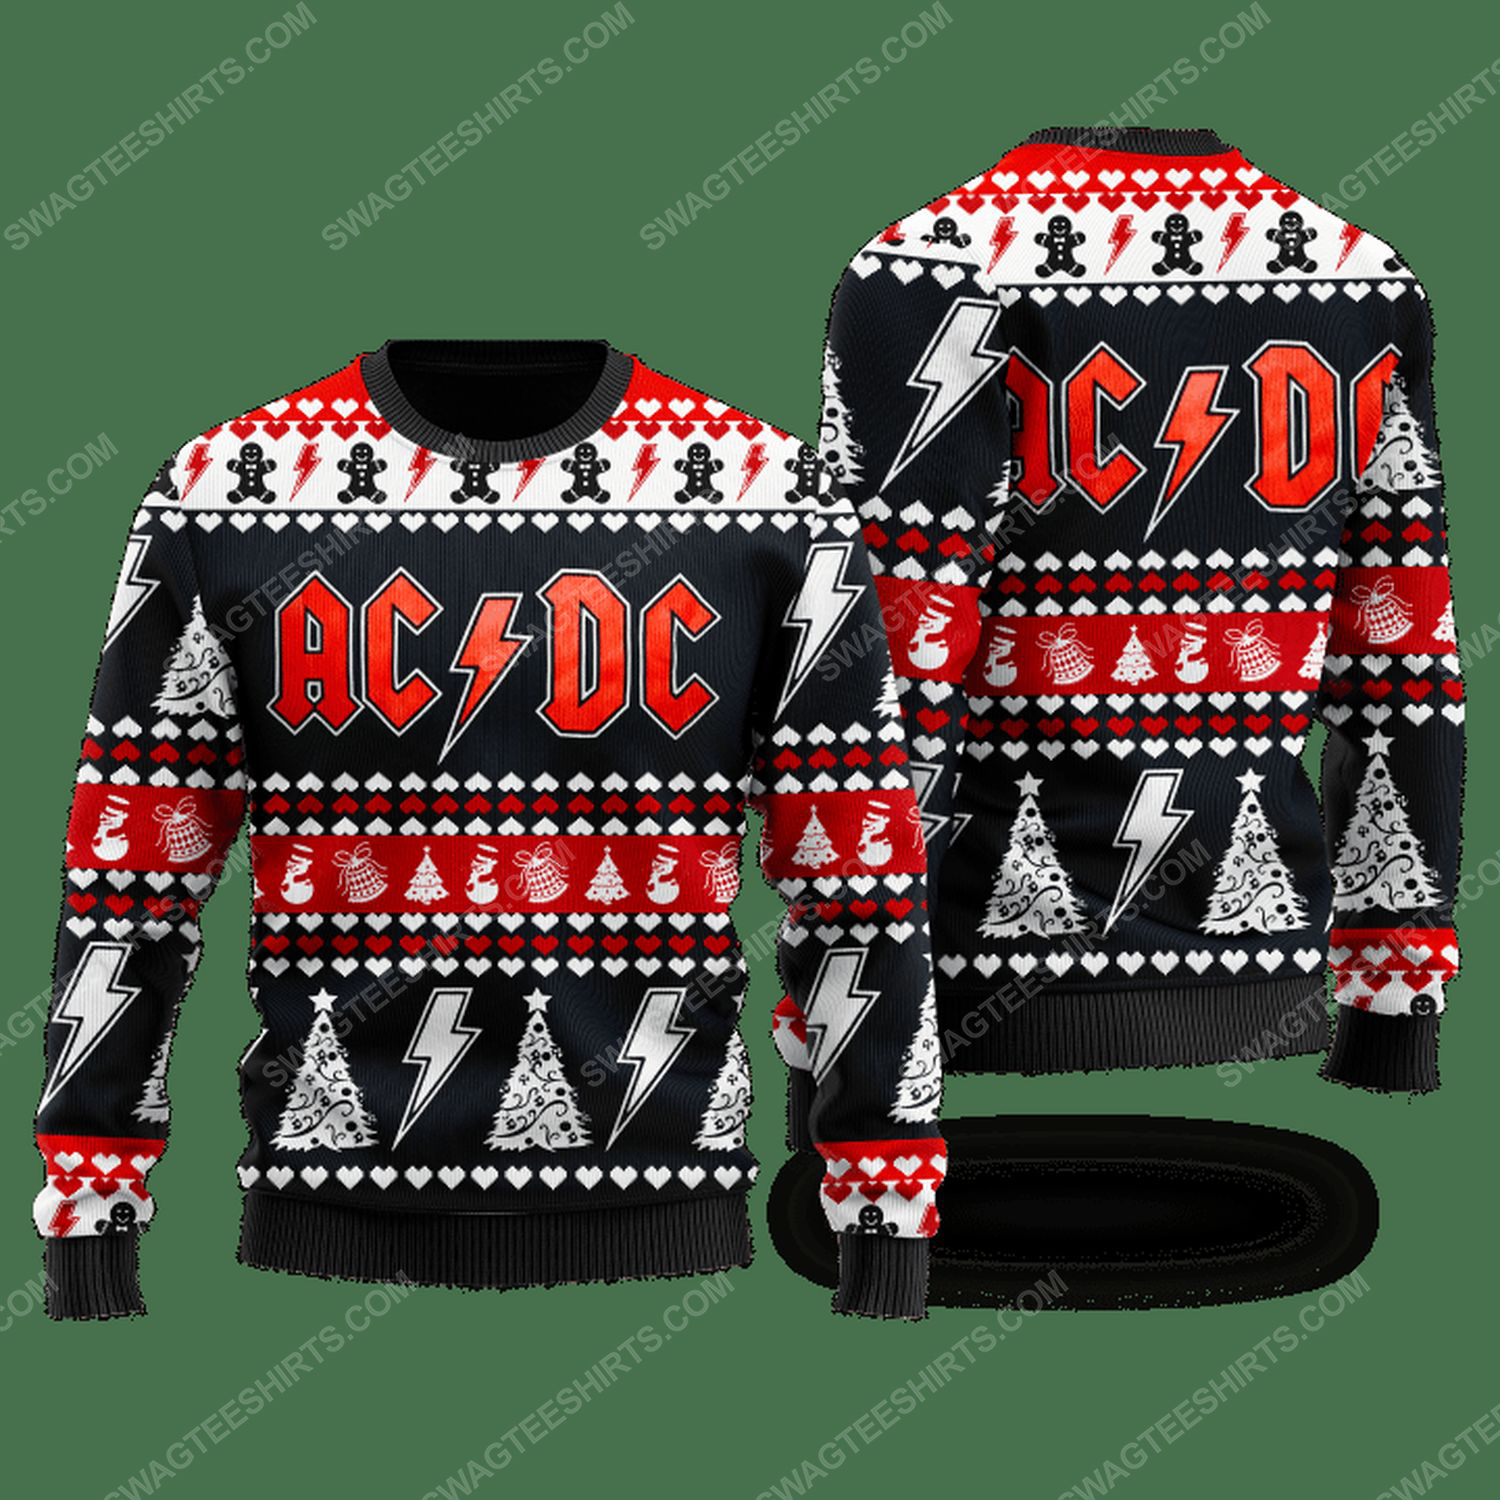 AC DC rock band ugly christmas sweater - Copy (3)